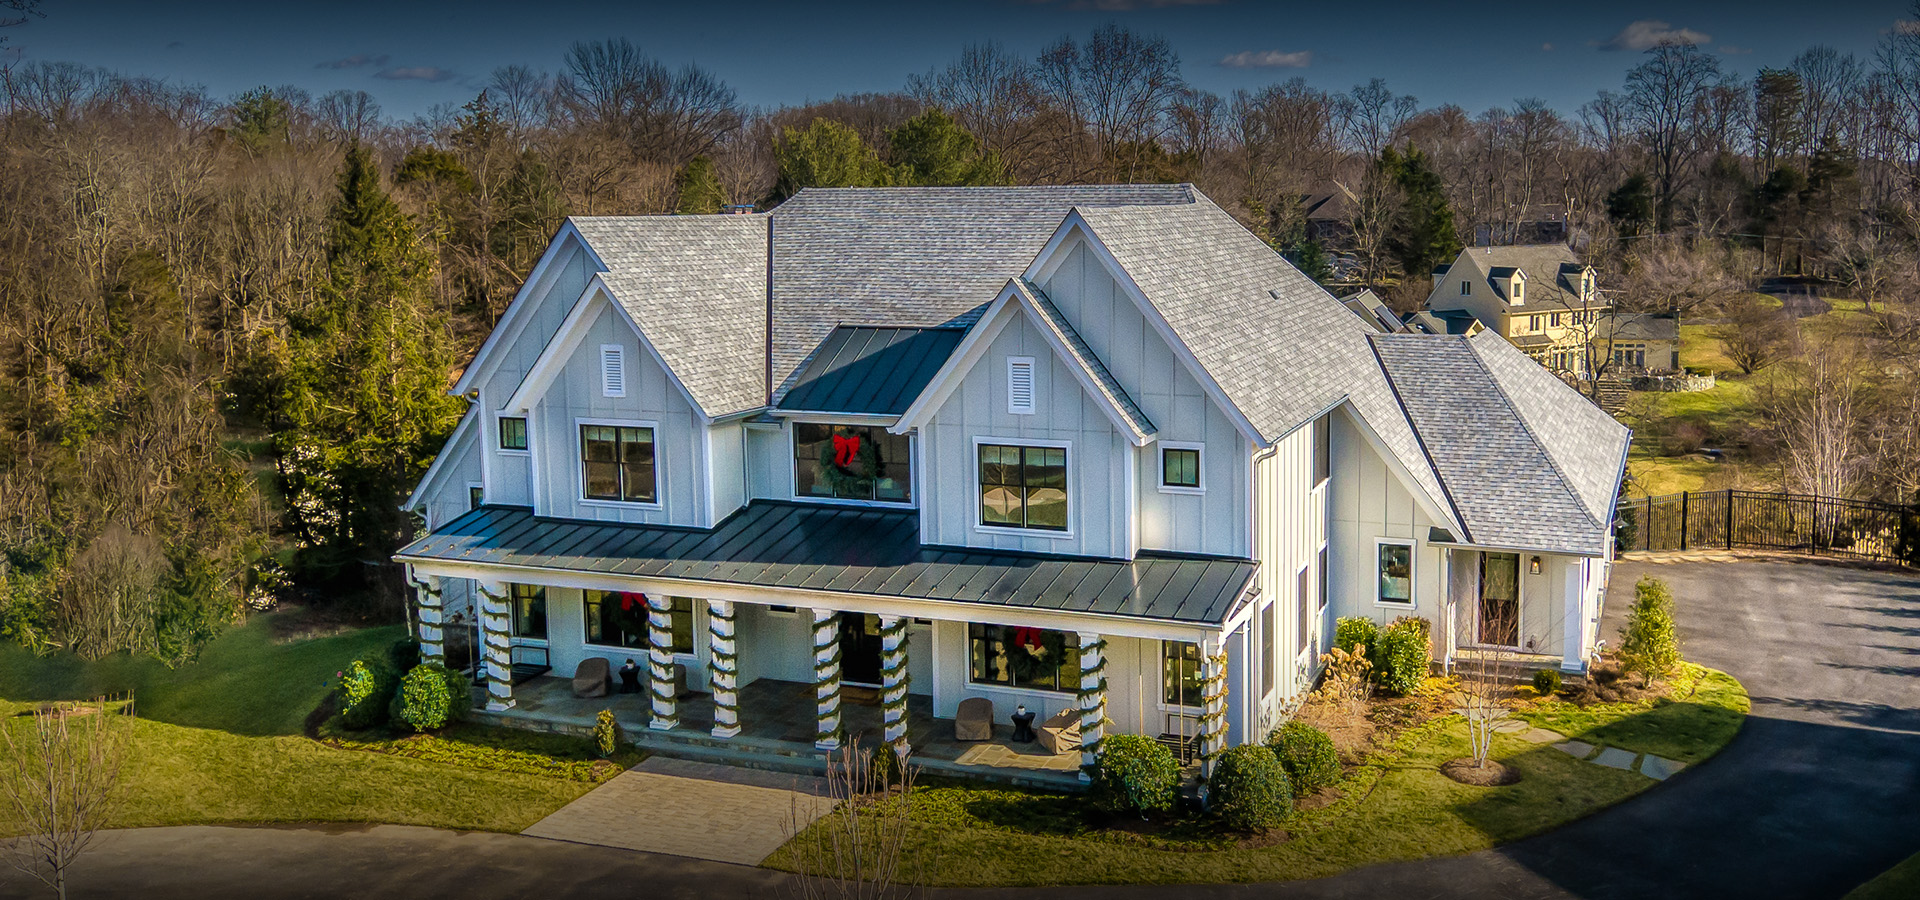 DNB Roofing LLC Presented Its Newest Portfolio